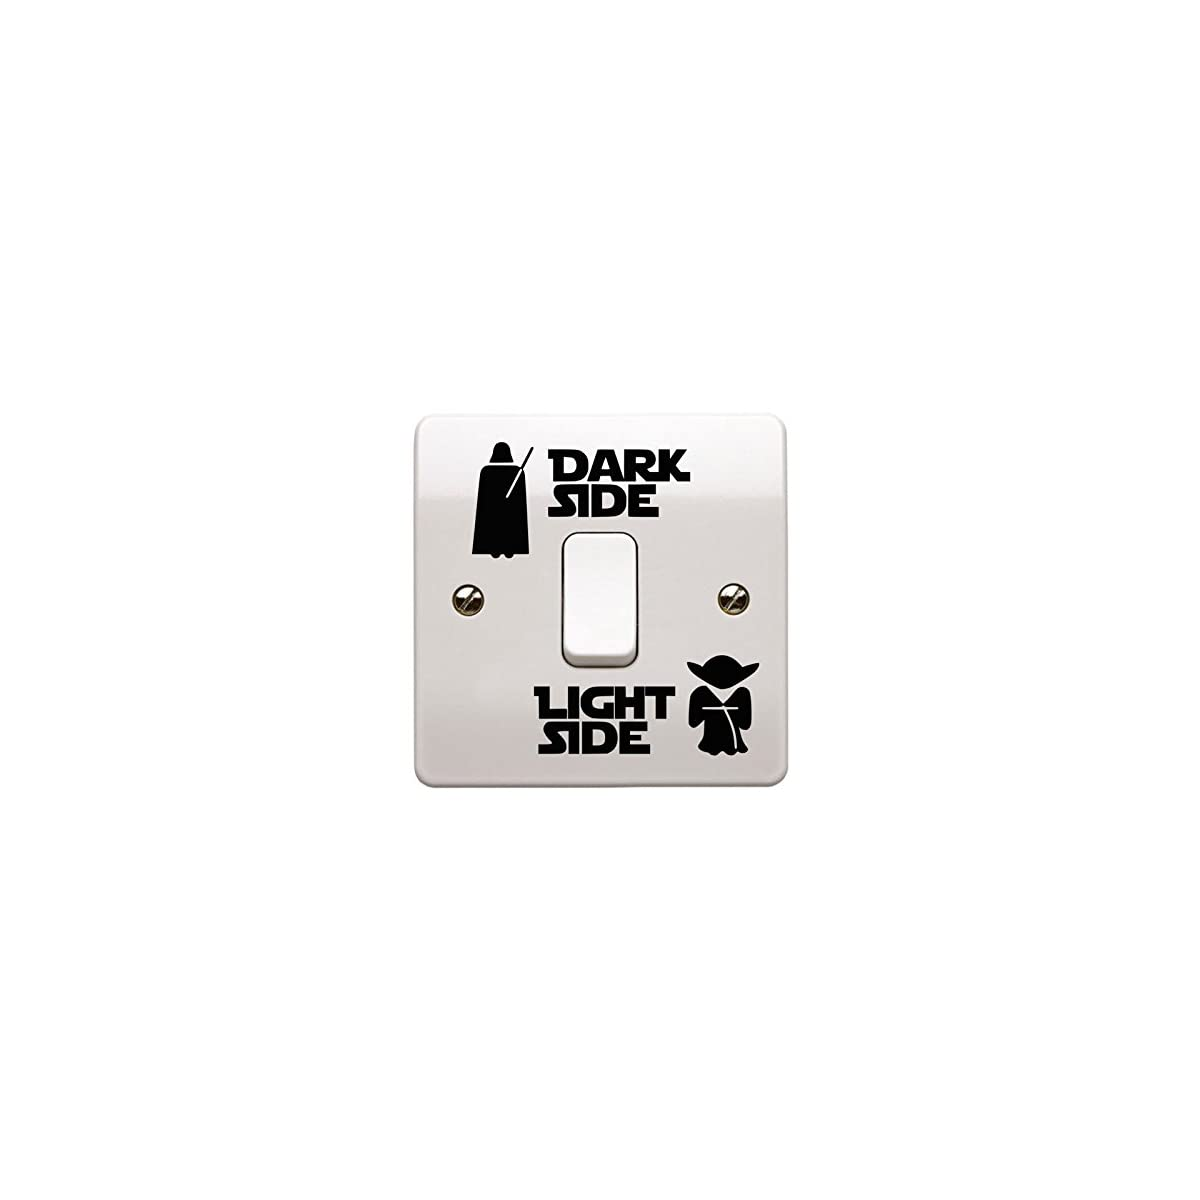 dark side light side light switch